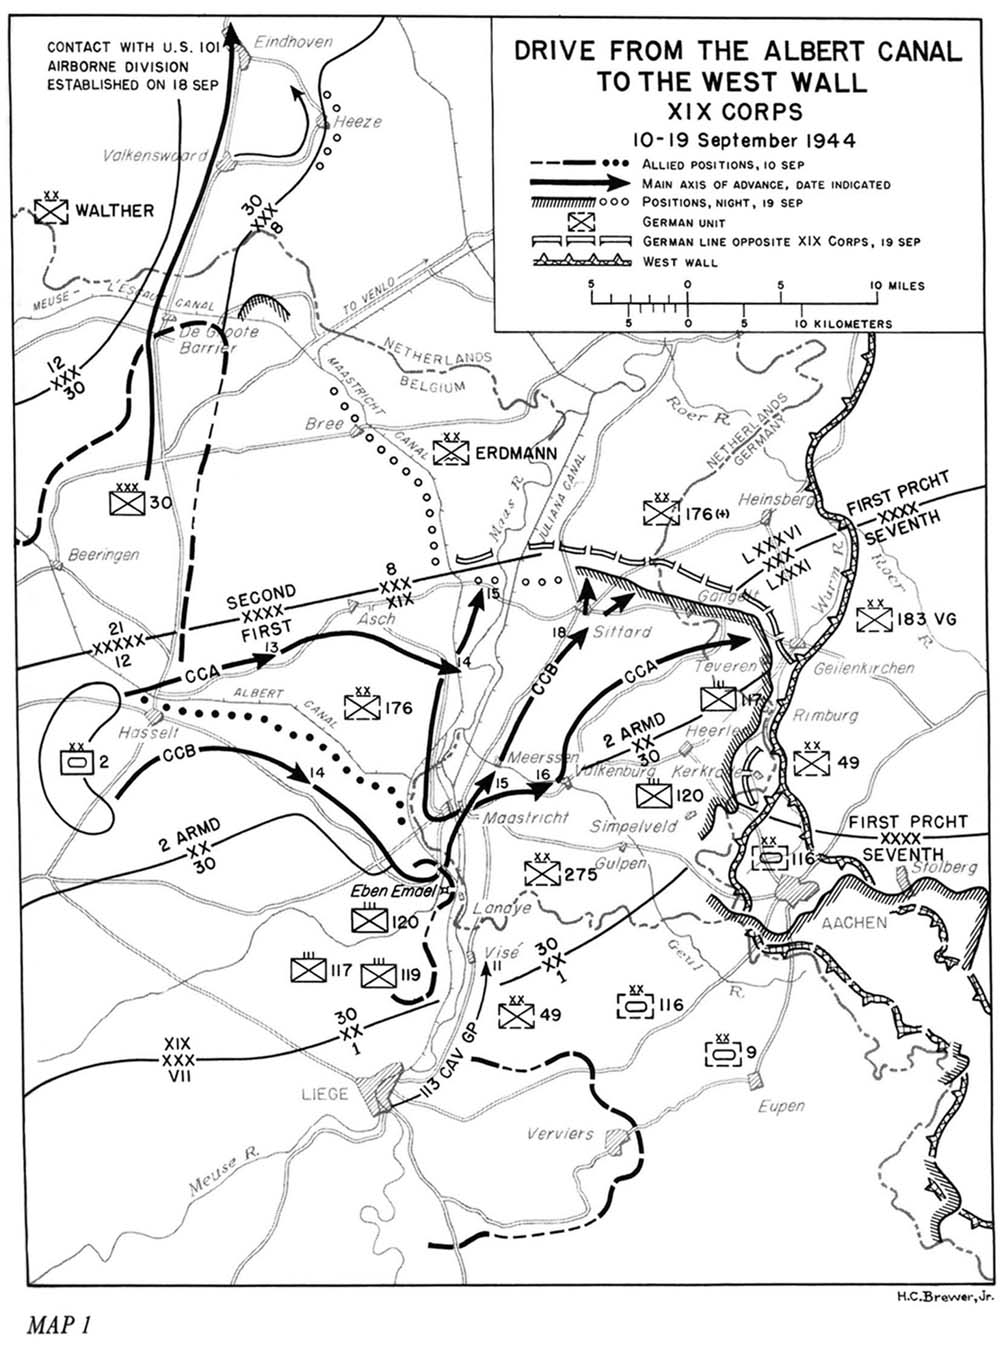 File:XIX Corps drive From the Albert Canal to the West